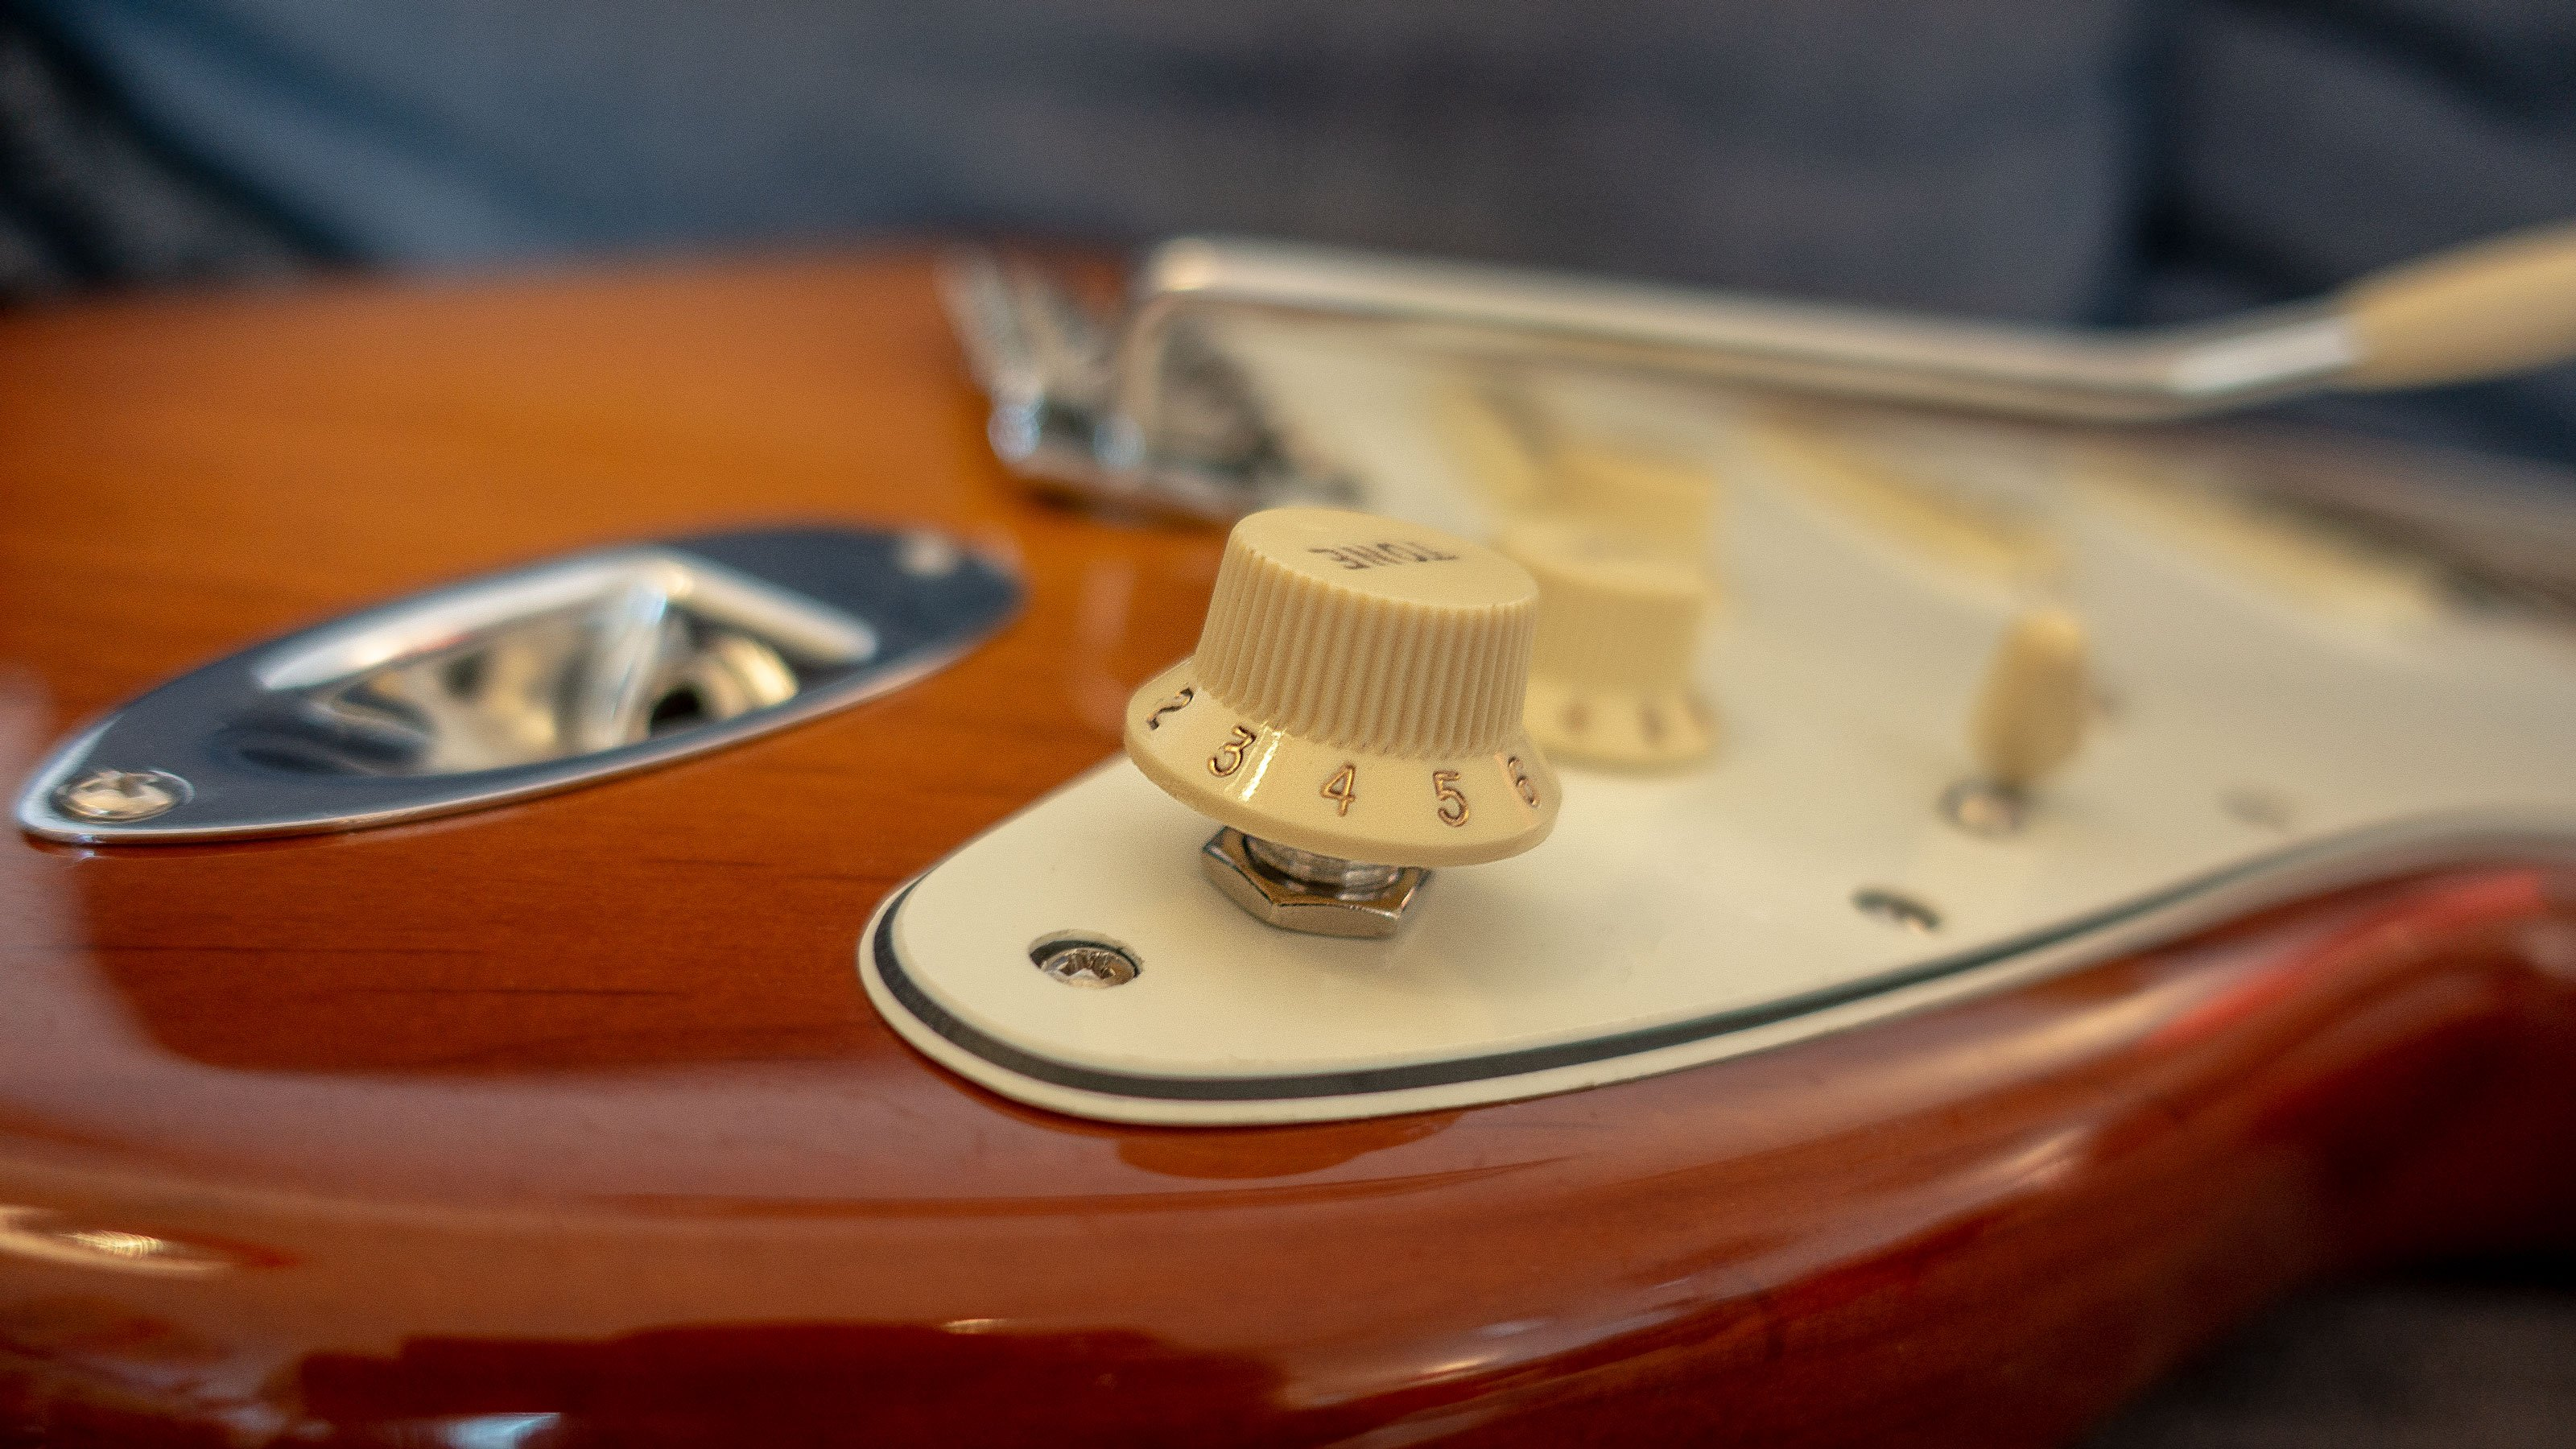 Fender 2019 American Performer Stratocaster review: A